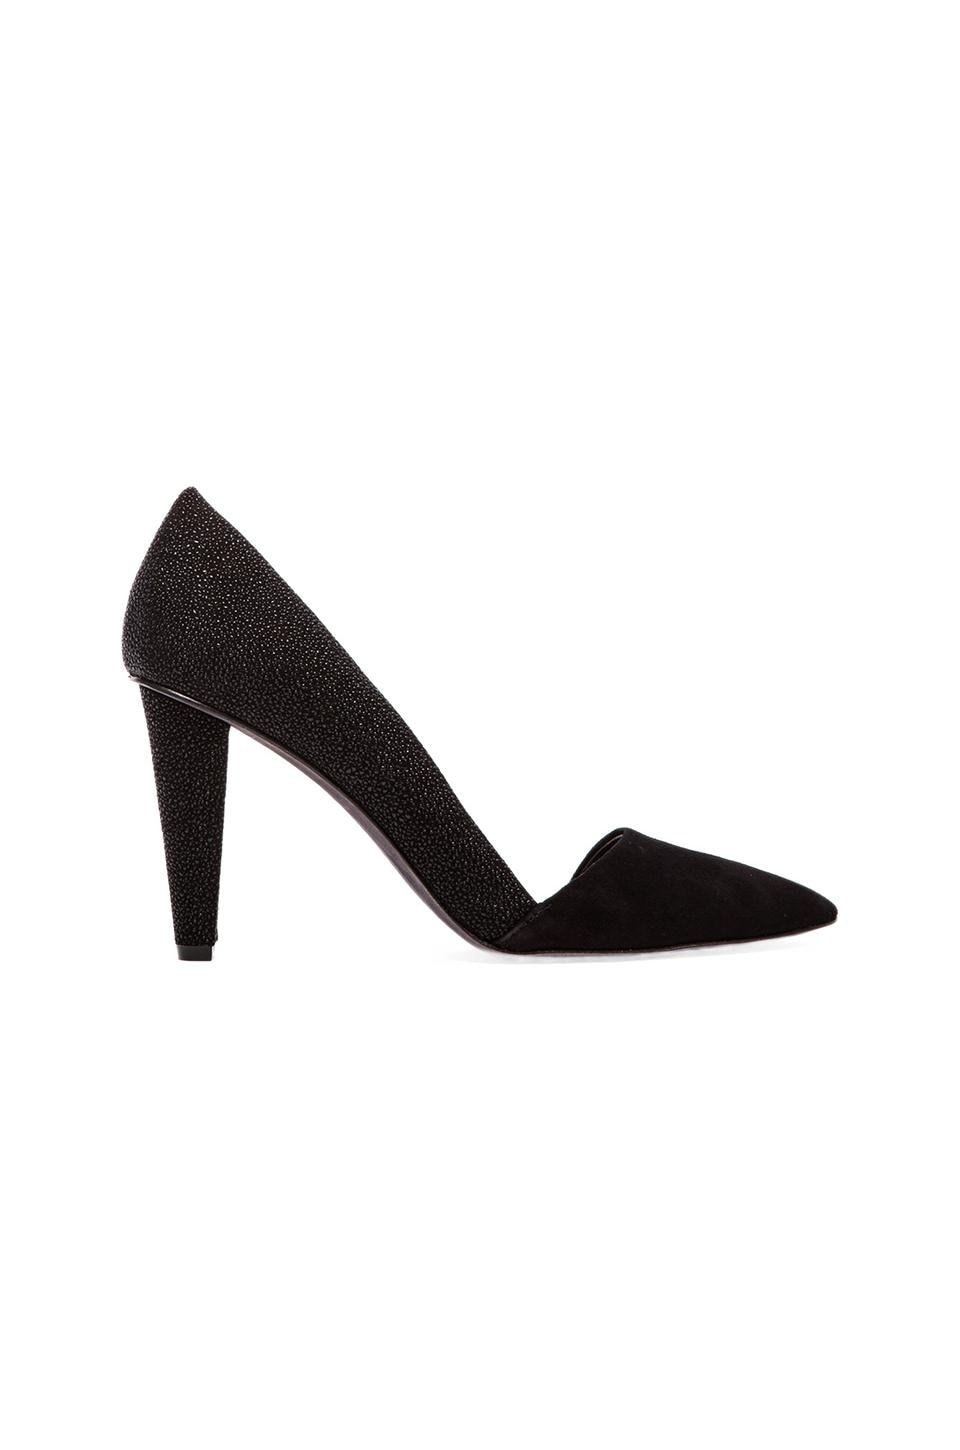 Rebecca Minkoff Abel Stingray Print Heel in Black